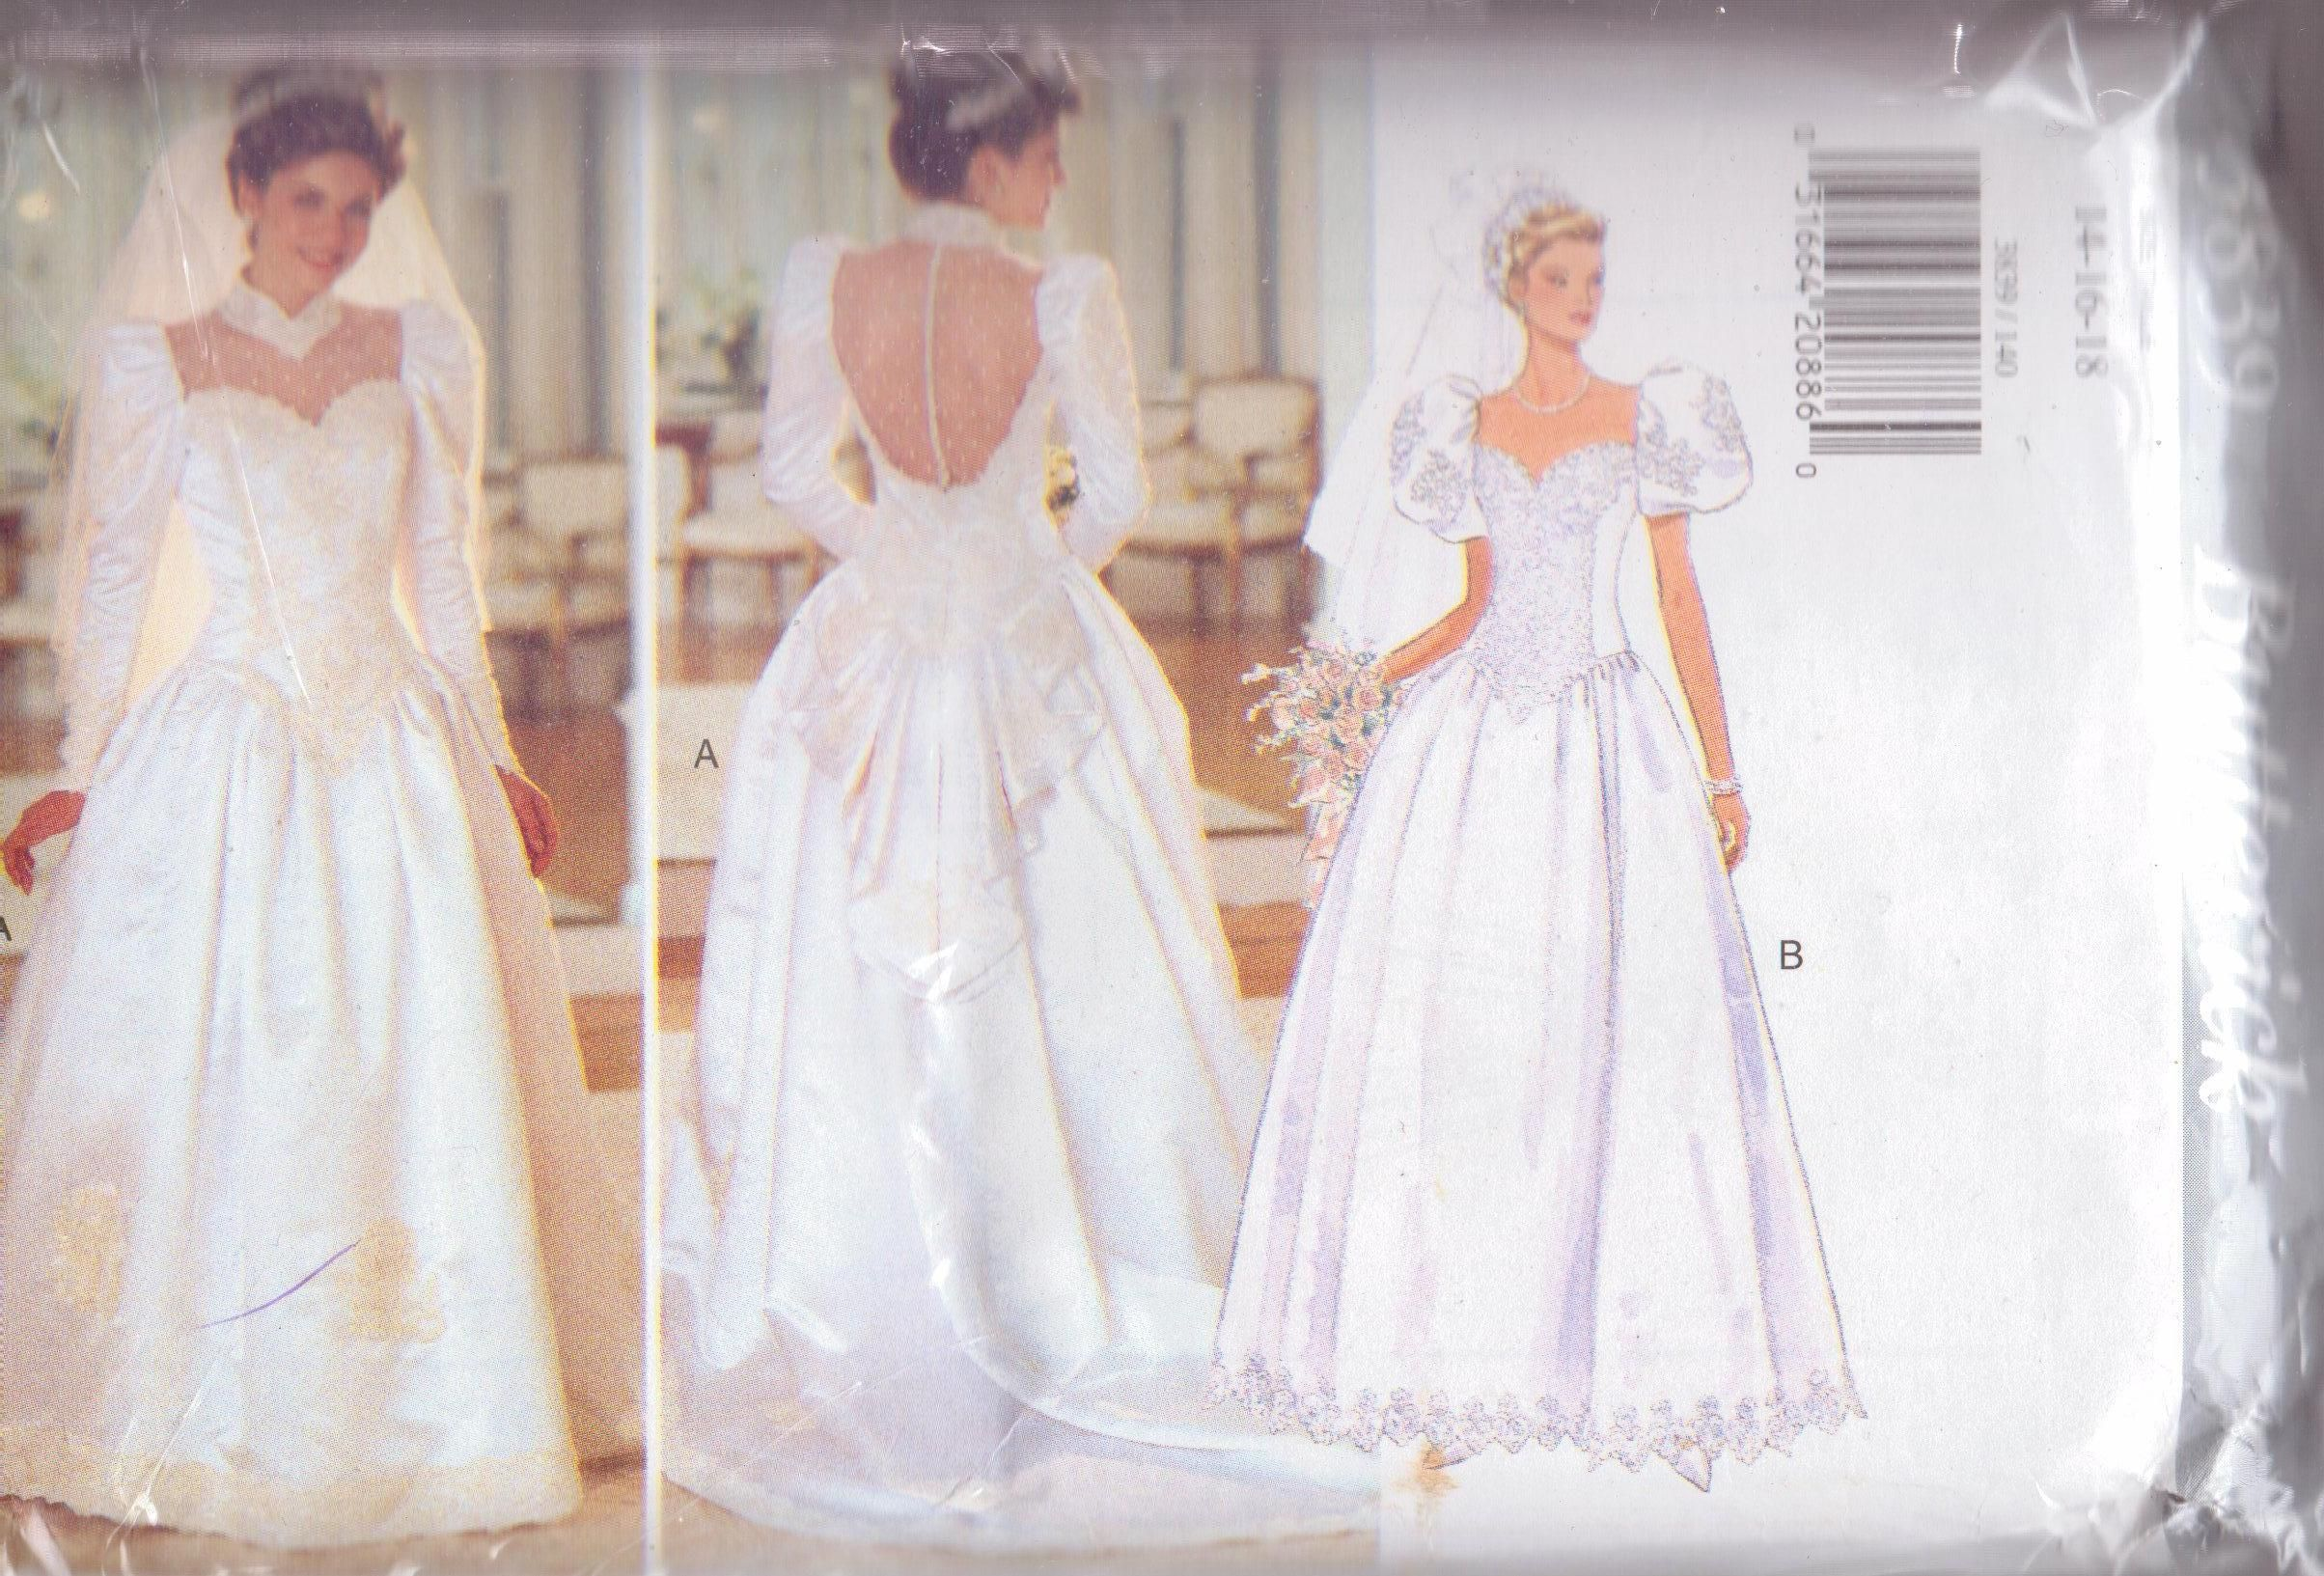 Butterick 3839 1995 bridal gown